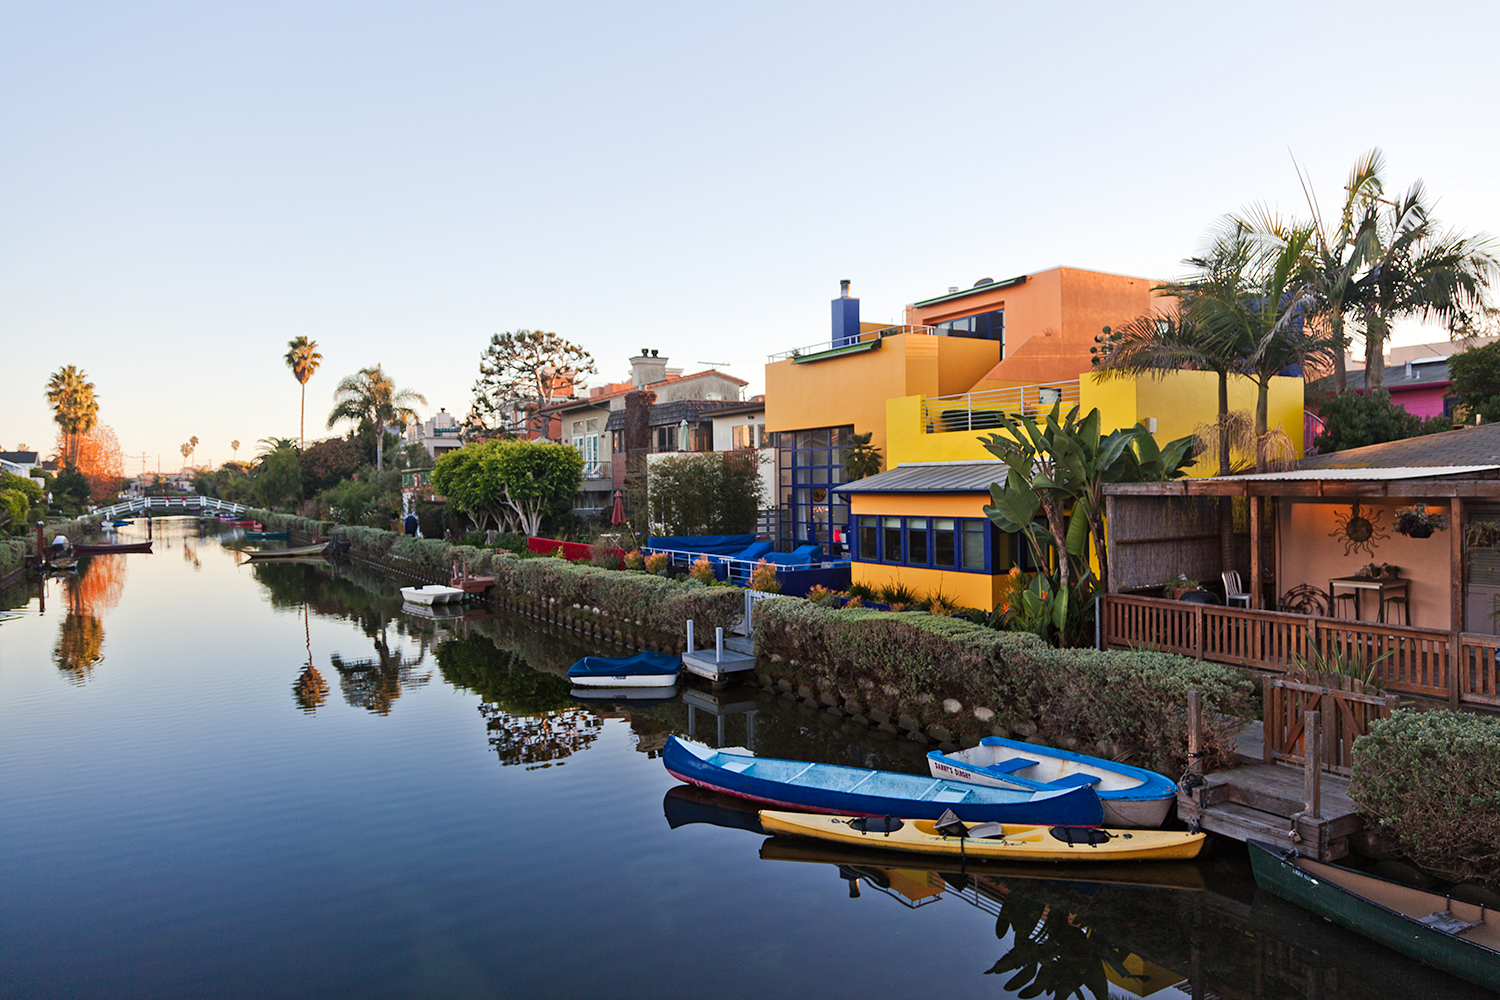 VENICE-BEACH-PHOTOGRAPHY-los-angeles-california-colorful-houses-boats-canal-.jpg